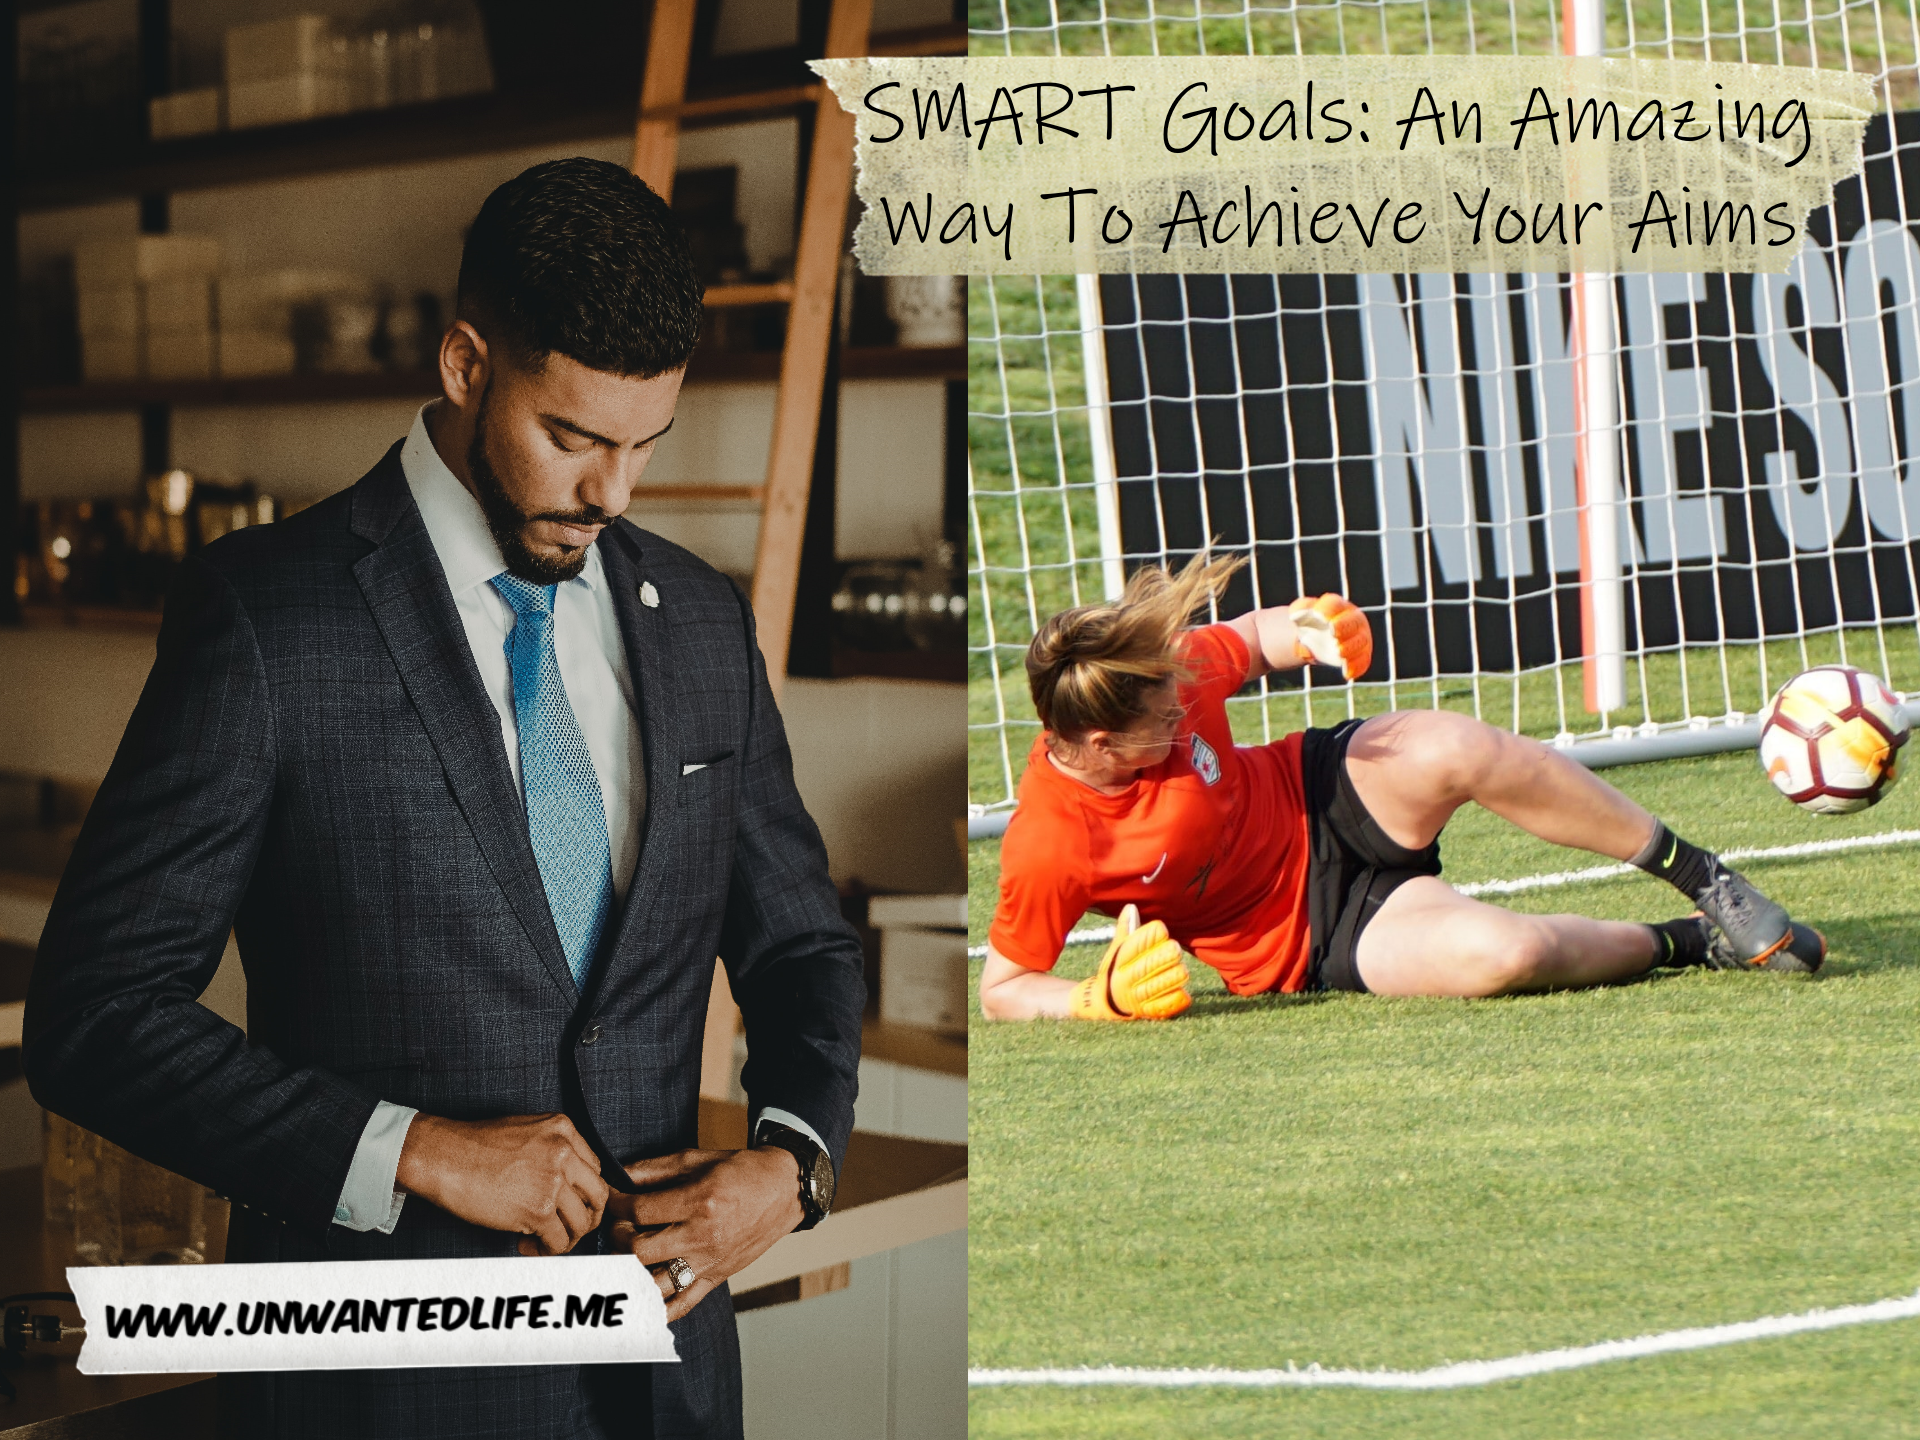 A picture tat is split in two down the middle with the left image being of a young black businessman in a smart suit and the right image of a female goal keeping attempting a save to represent - SMART Goals: An Amazing Way To Achieve Your Aims